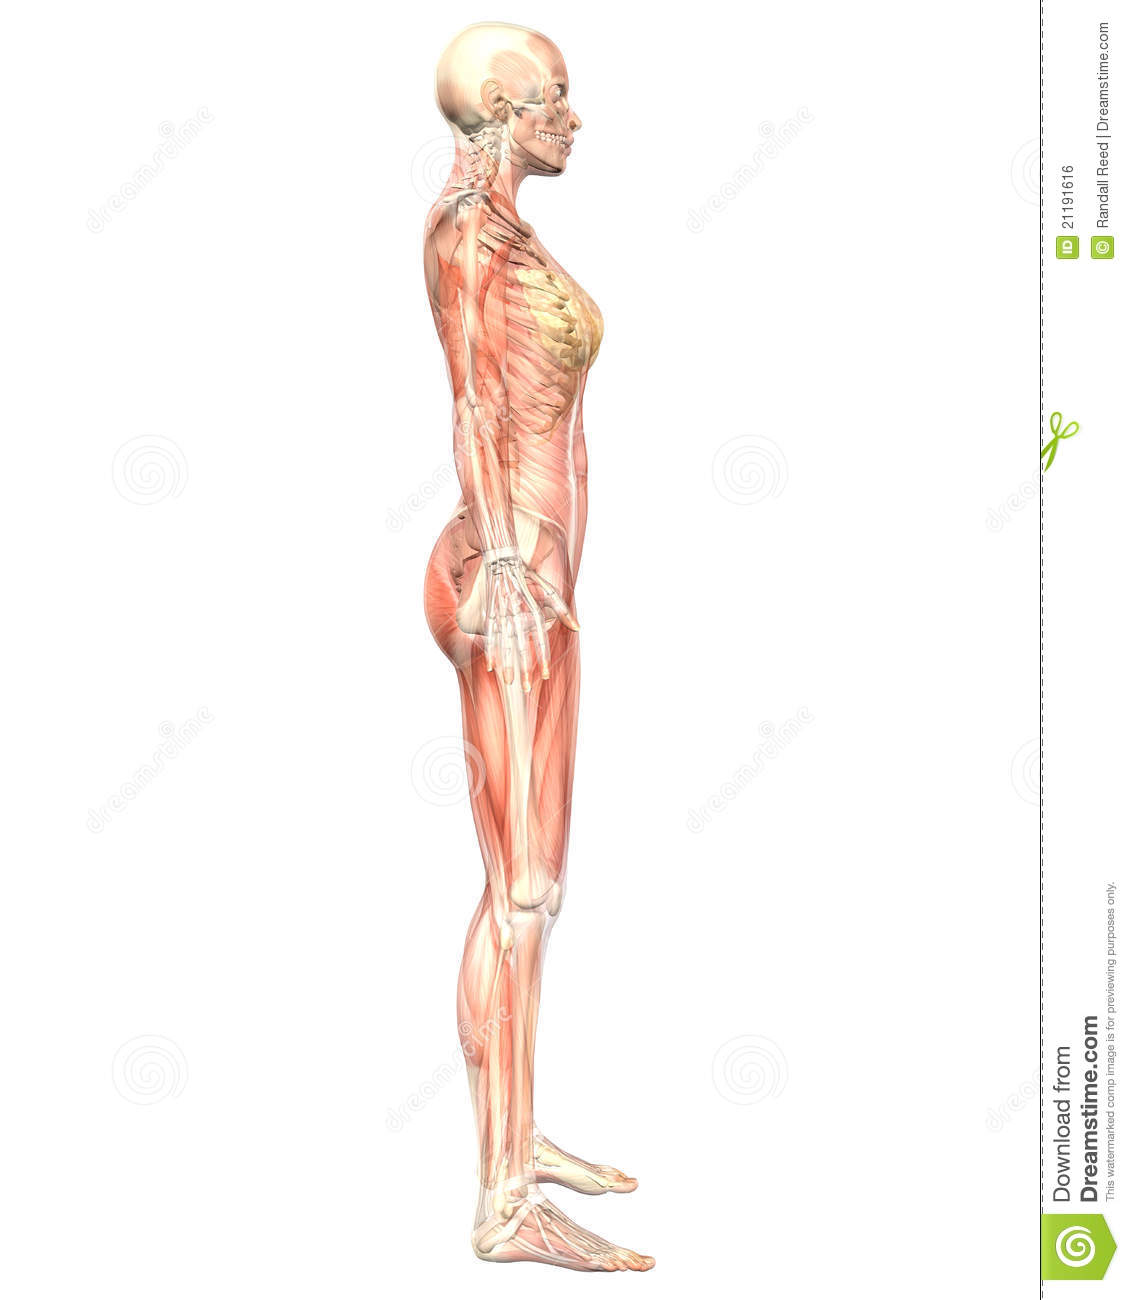 Female Muscular Anatomy Semi Transparent Side View Illustration ...